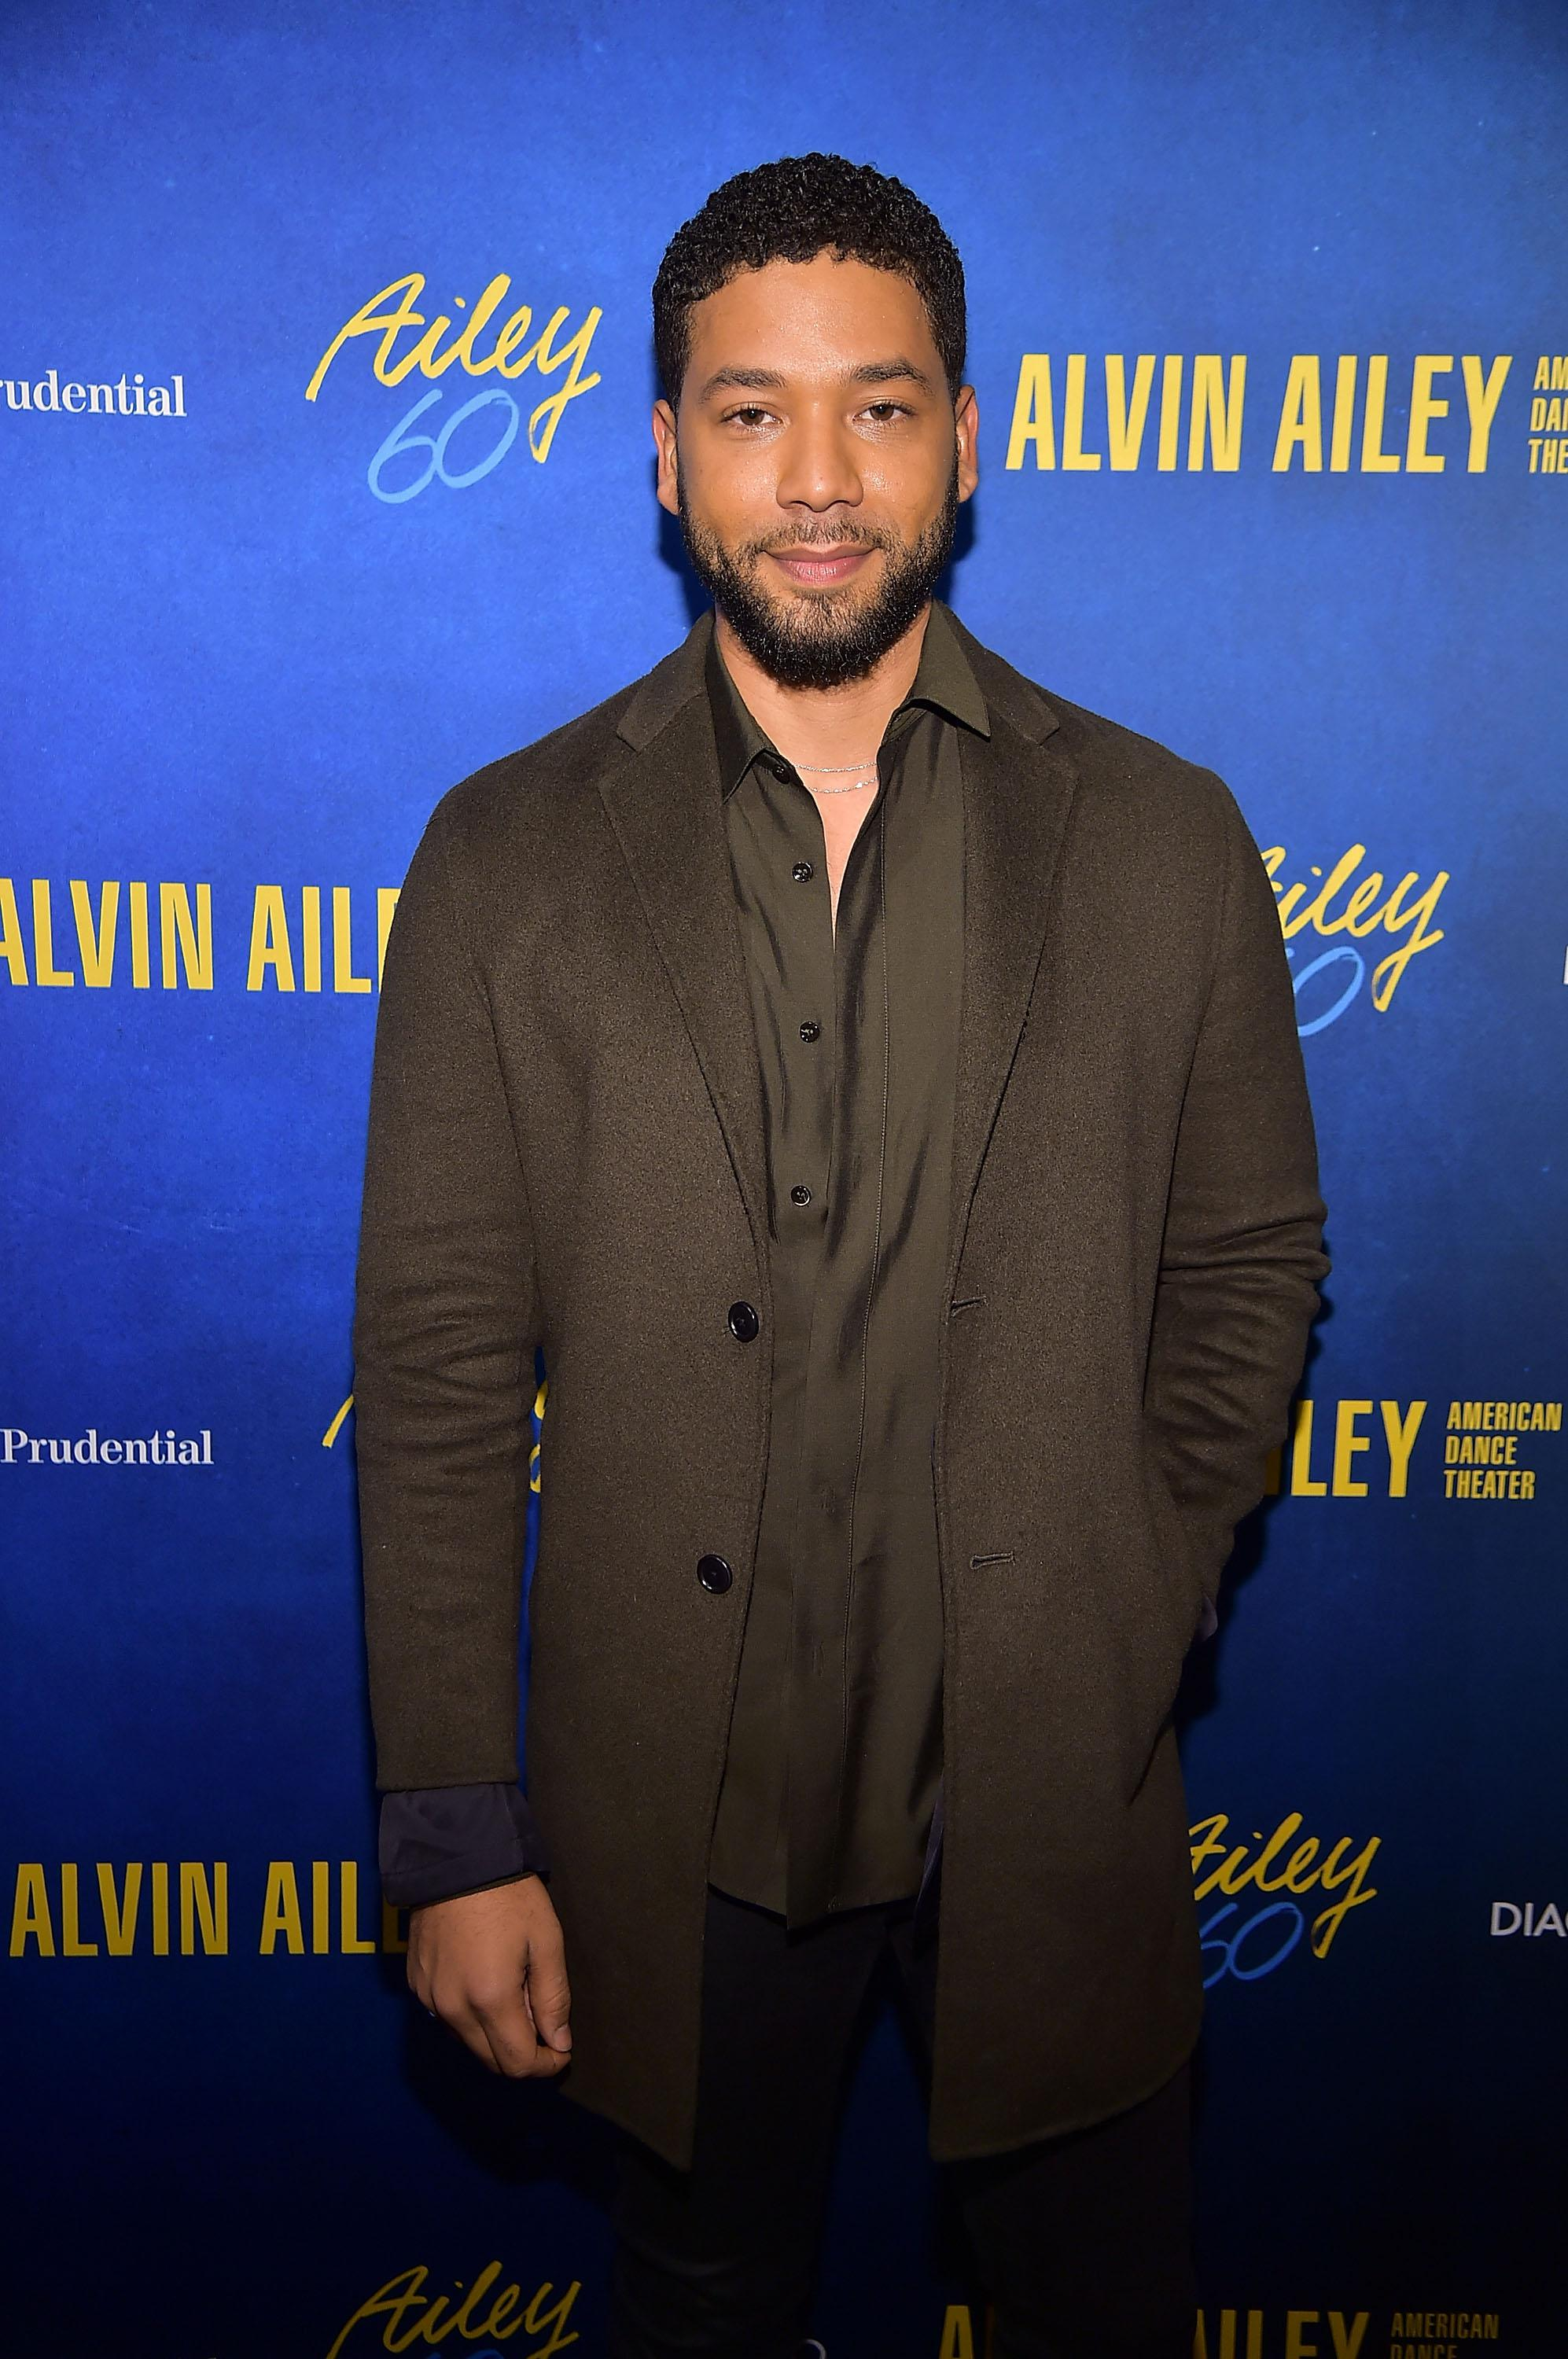 NEW YORK, NY - NOVEMBER 28:  Jussie Smollett attends the Alvin Ailey American Dance Theater's 60th Anniversary Opening Night Gala Benefit at New York City Center on November 28, 2018 in New York City.  (Photo by Theo Wargo/Getty Images)